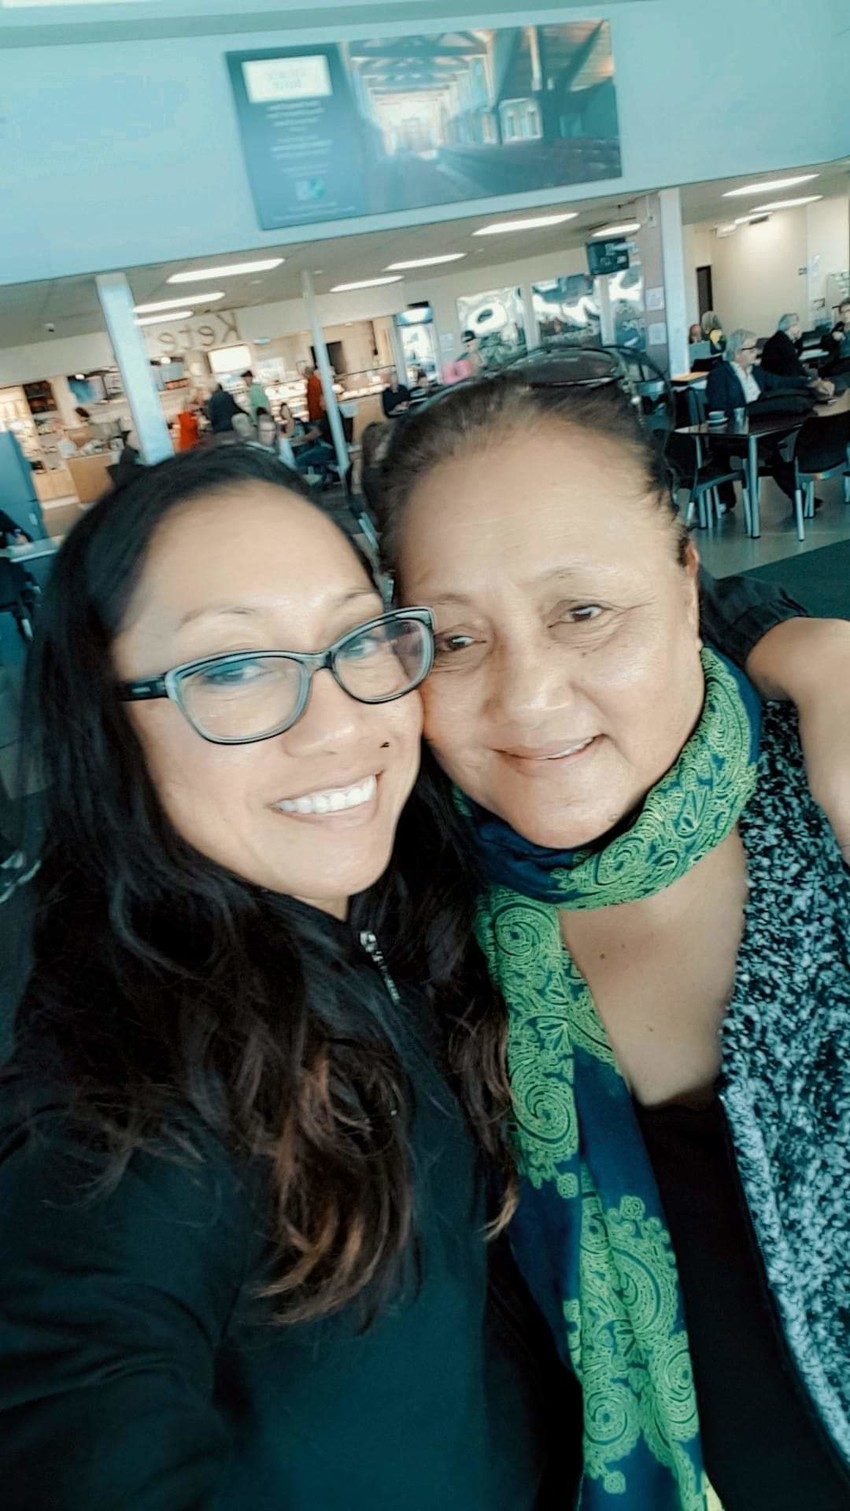 Priscilla and her mother Sega Va'asili-Tuala